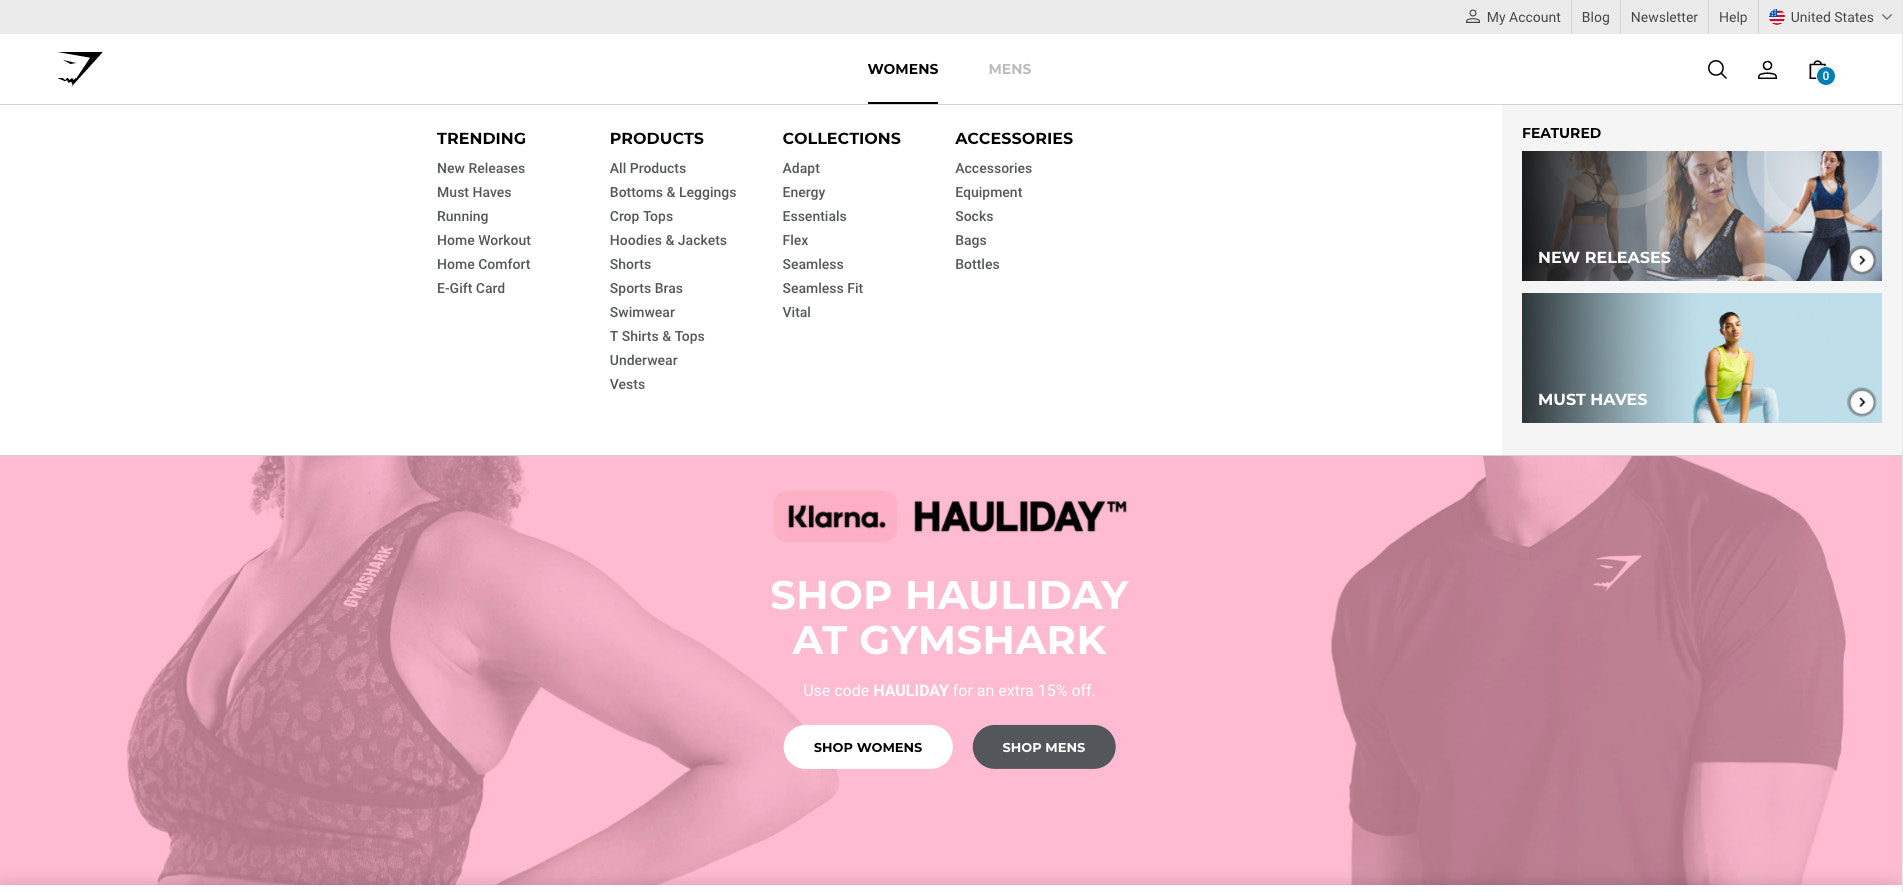 Image showing an example of good SEO within menu hierarchy which makes it easy for users to browse and search engines to crawl GymShark's website, respectively.